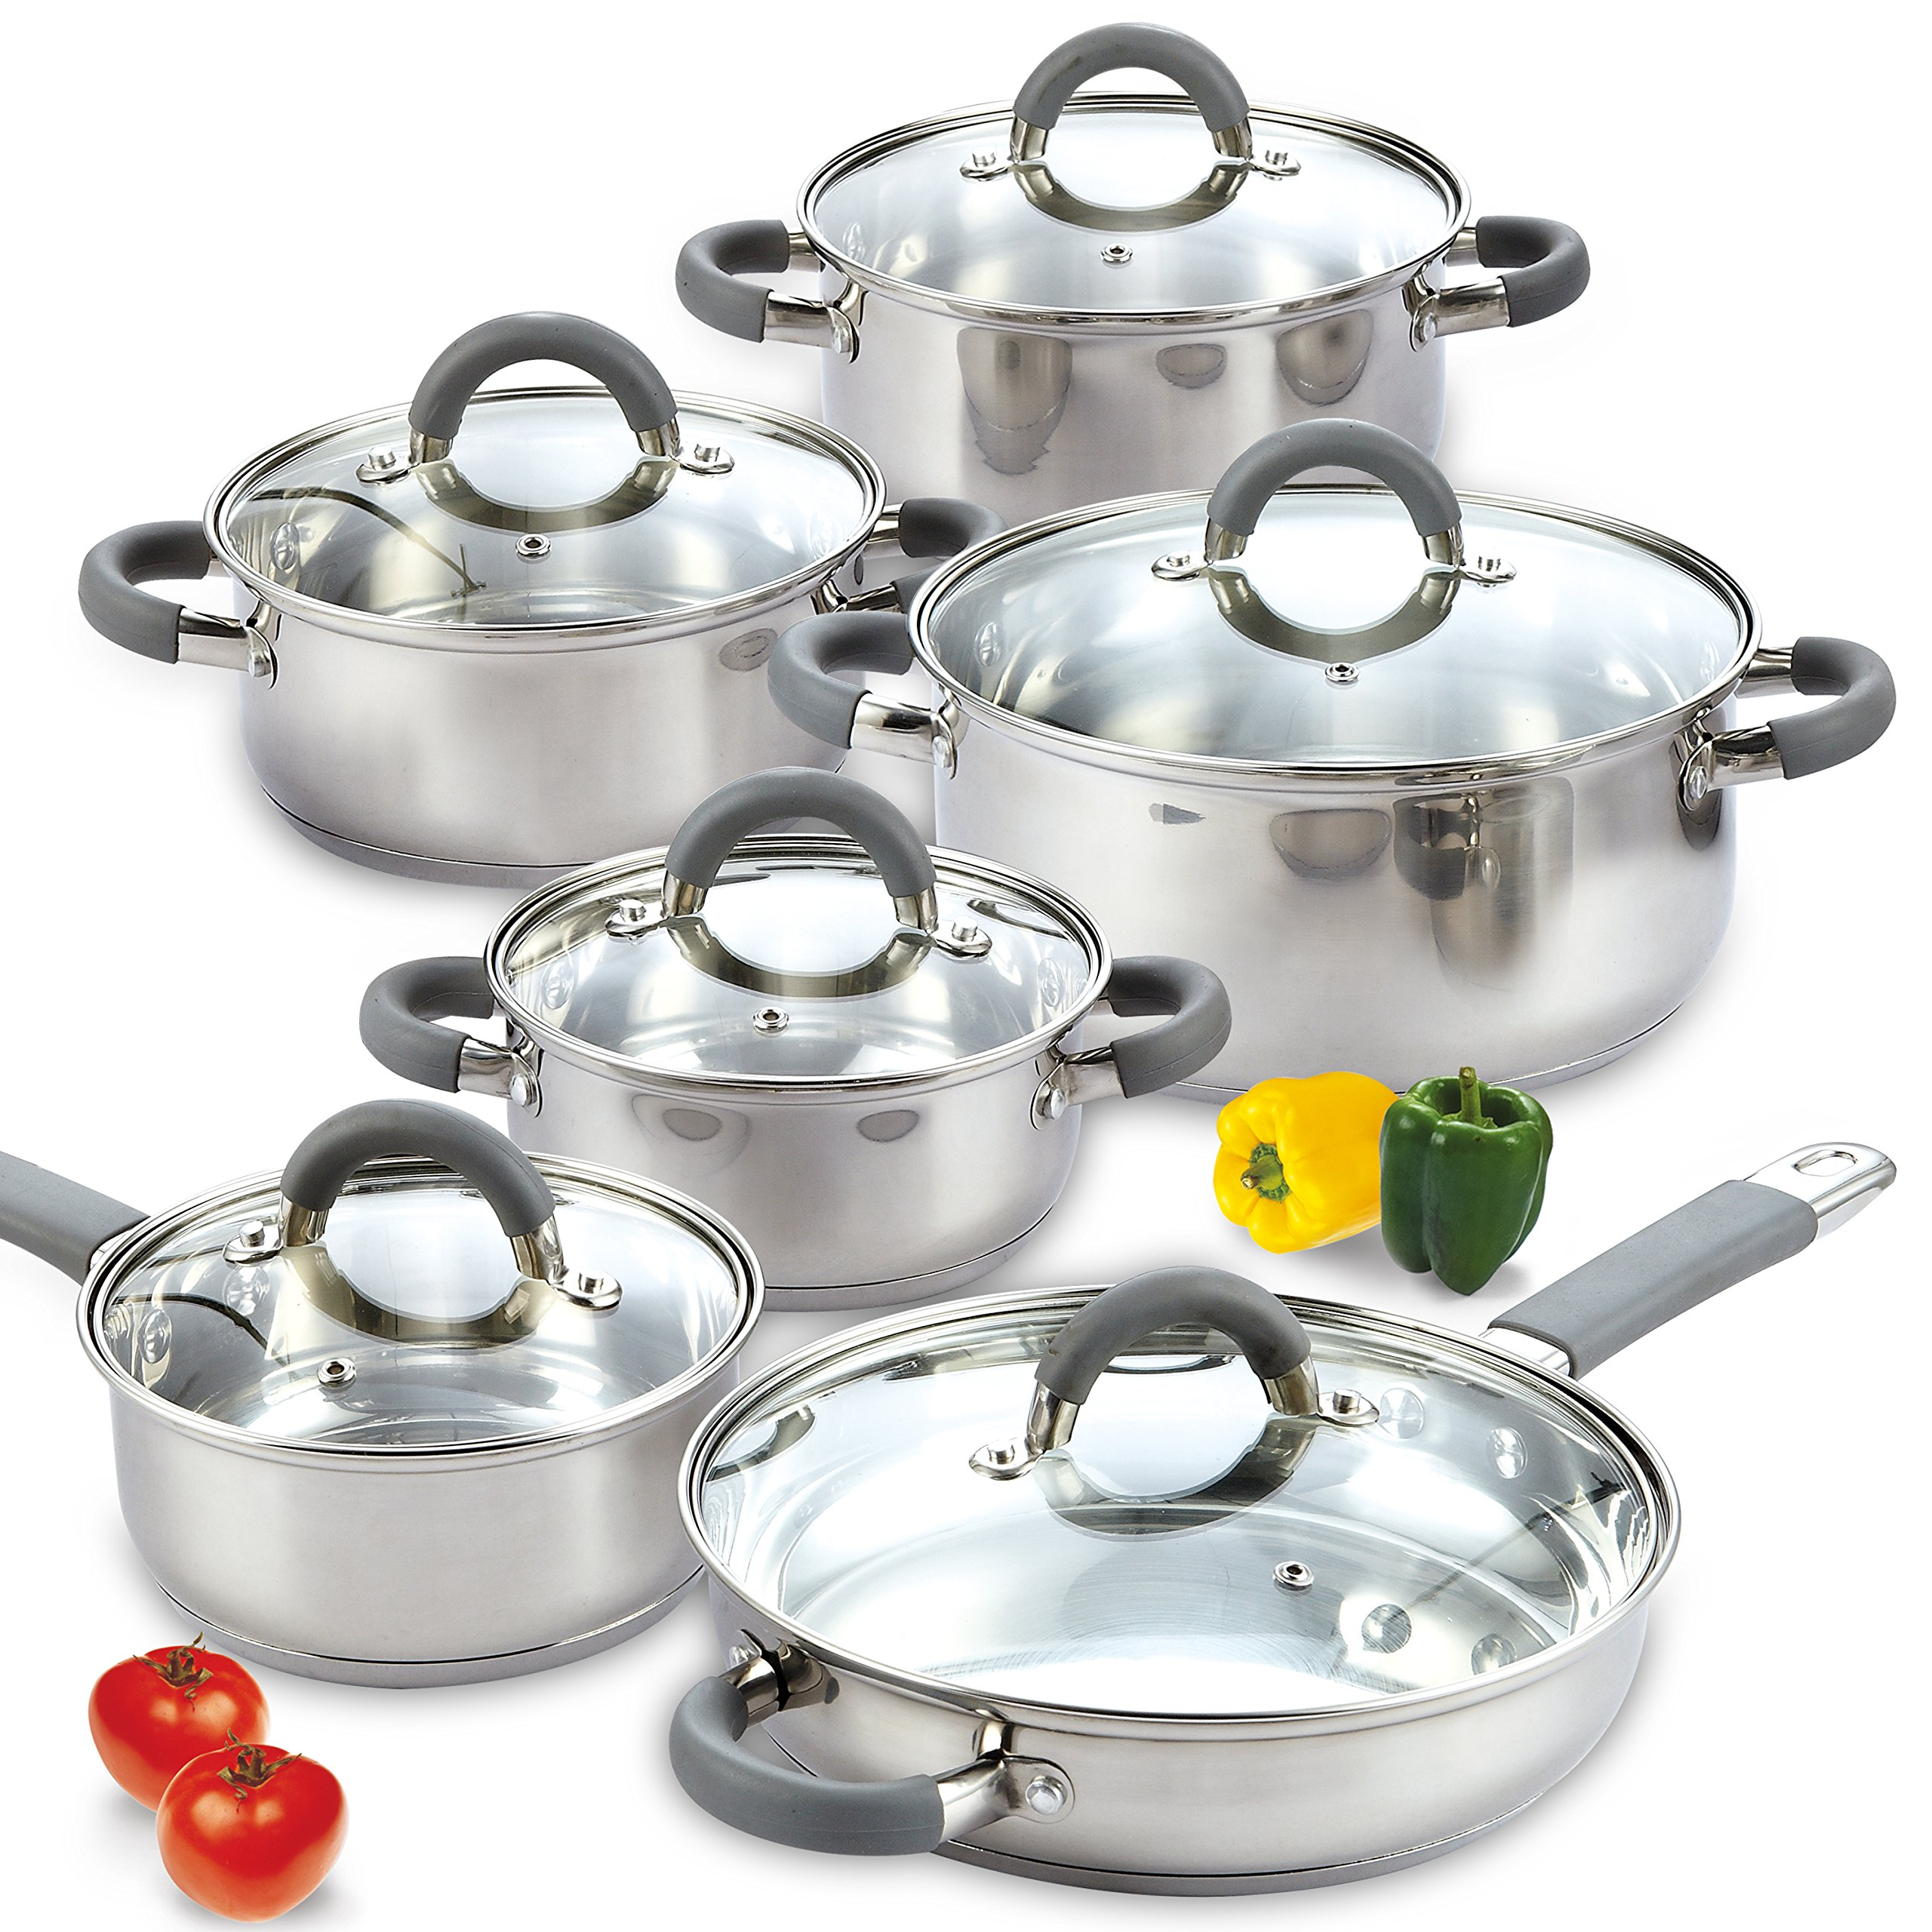 Cook N Home 02410 12 Piece Stainless Steel Cookware Set Silver 10